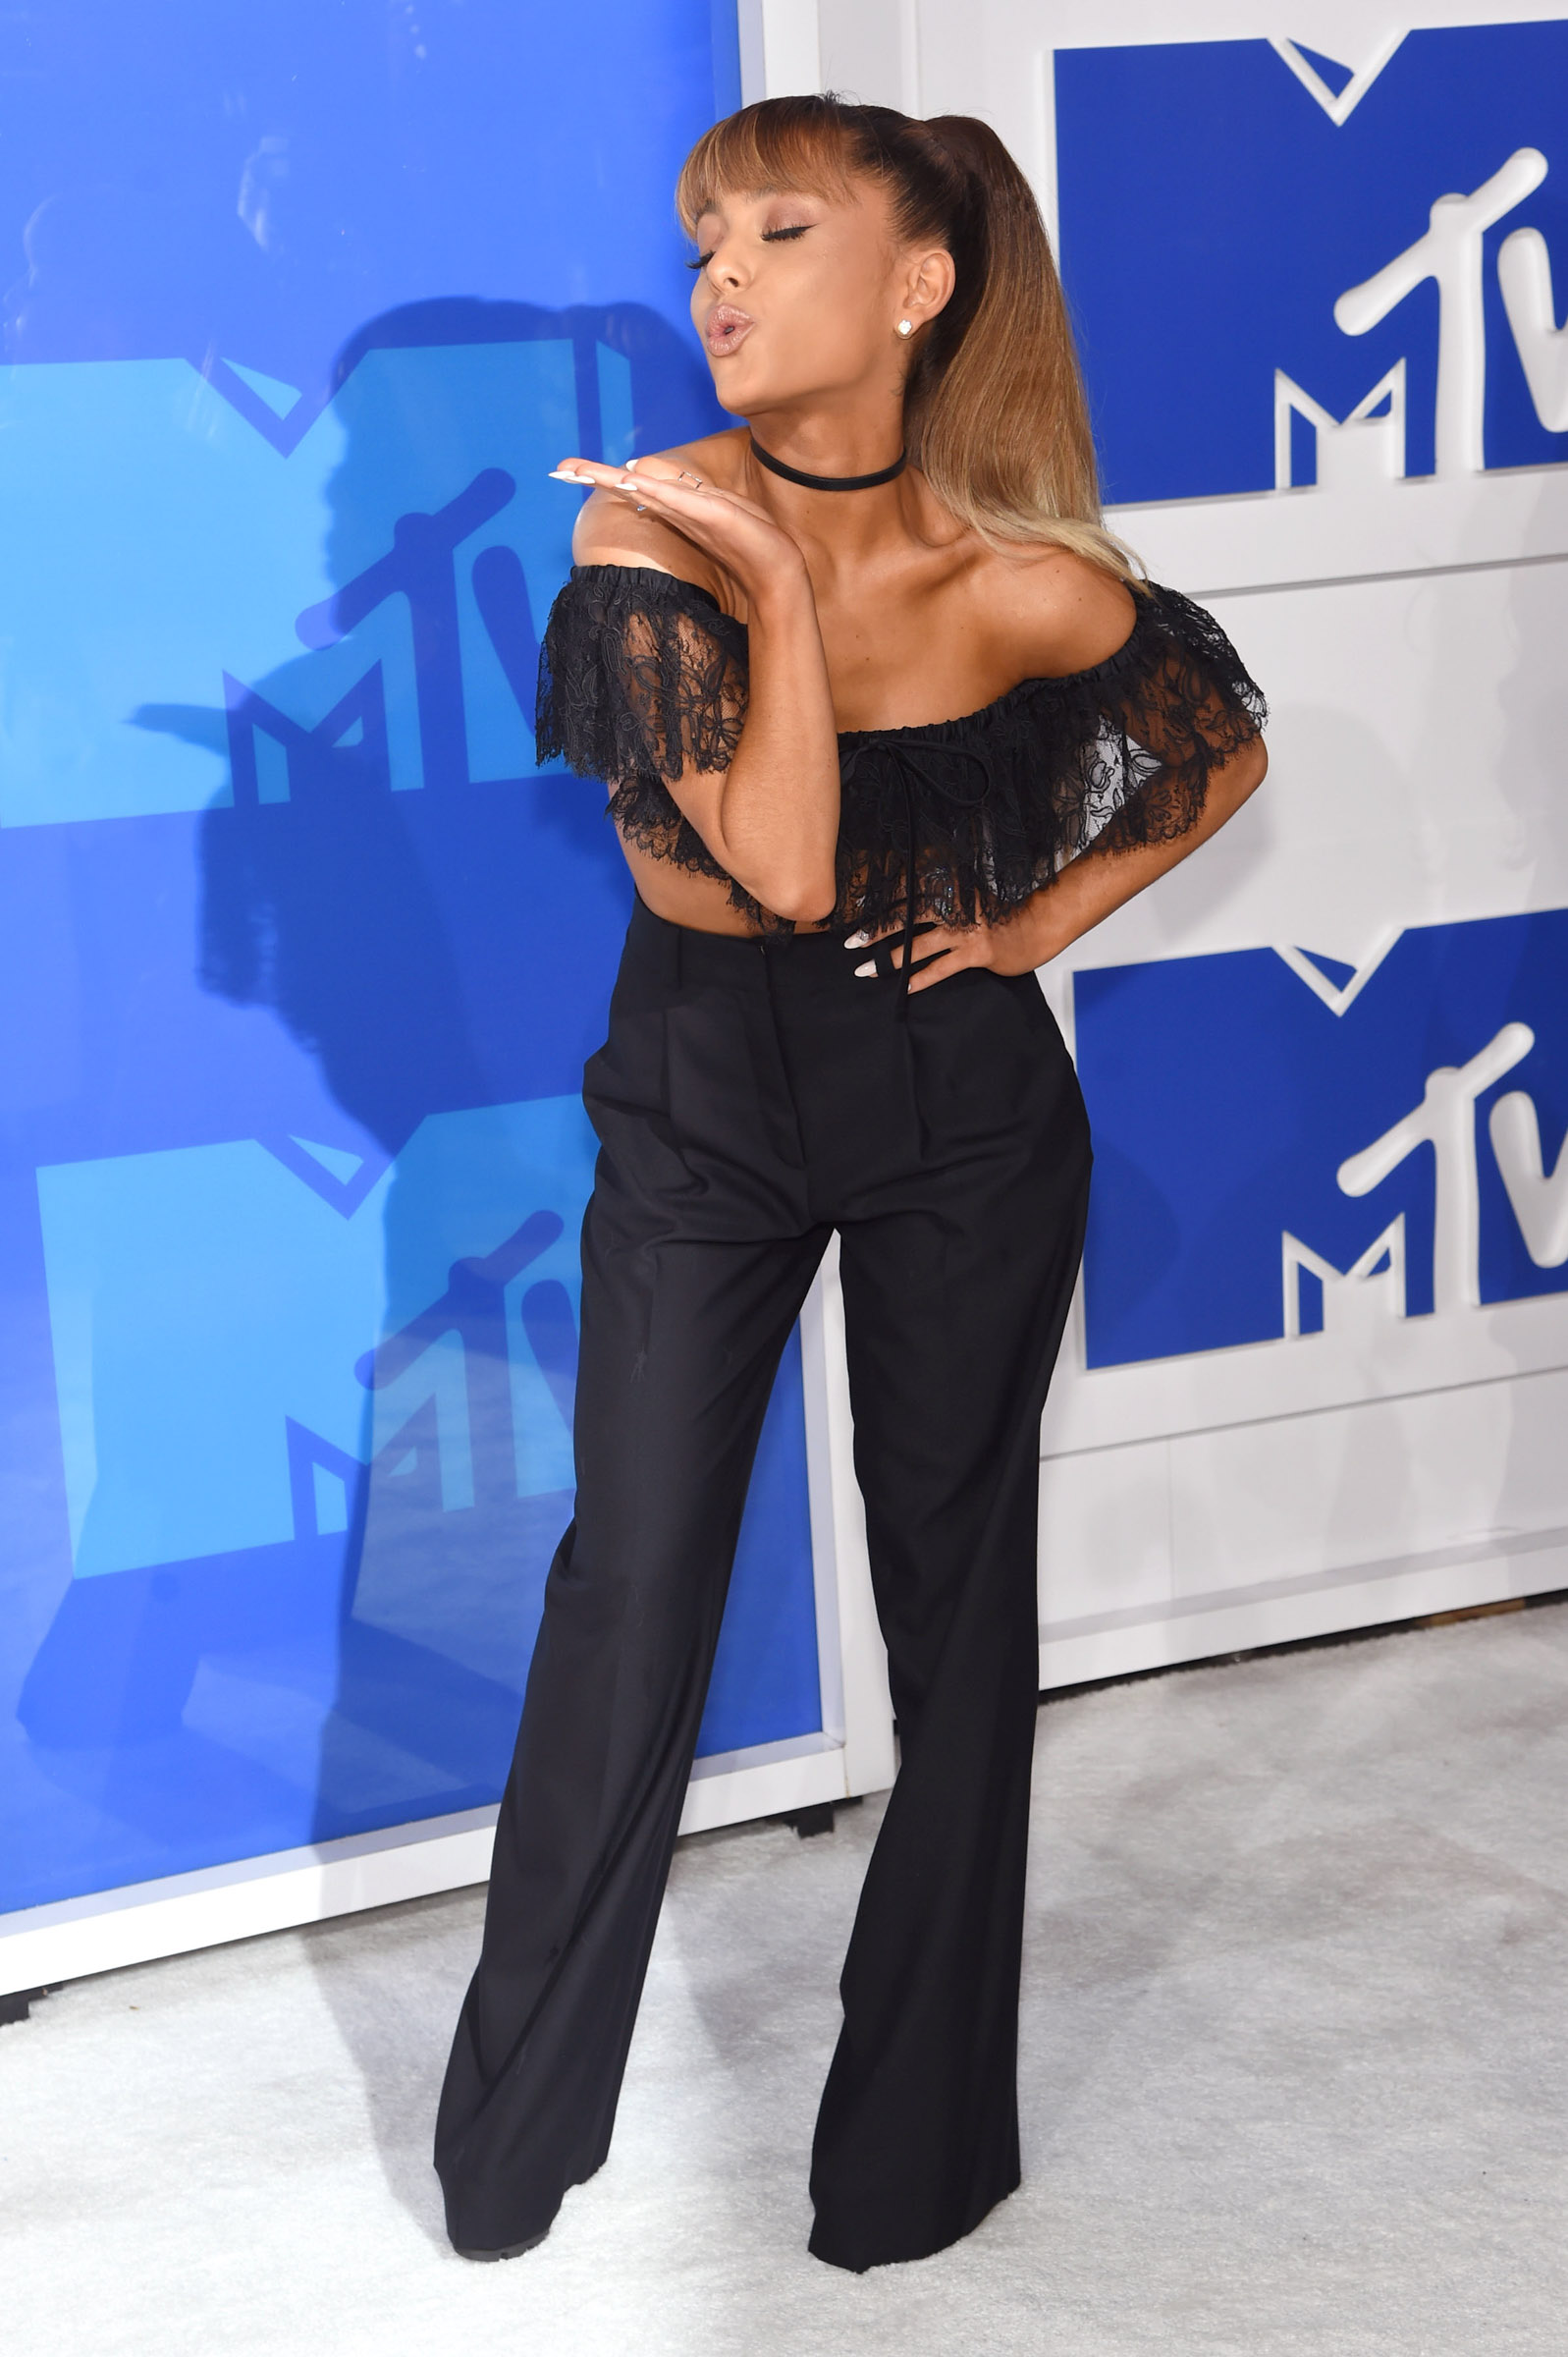 NEW YORK, NY - AUGUST 28:  Ariana Grande attends the 2016 MTV Video Music Awards at Madison Square Garden on August 28, 2016 in New York City.  (Photo by Jamie McCarthy/Getty Images)